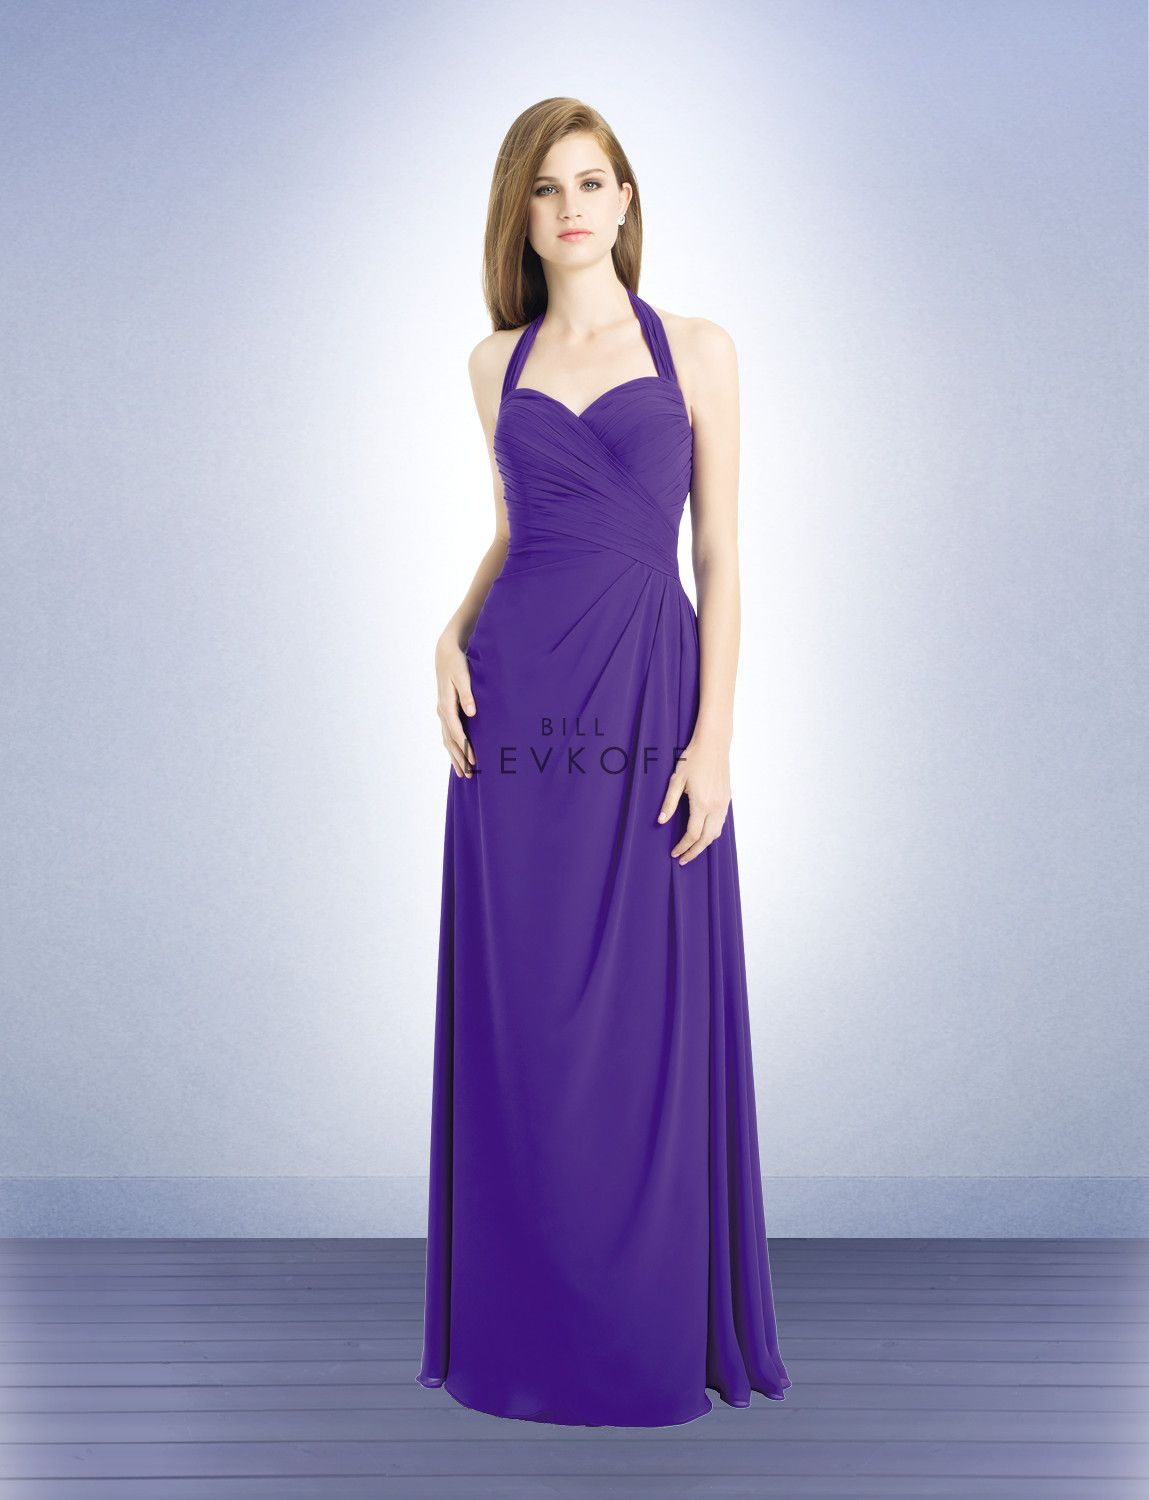 Bridesmaid Dress Style 731 - Bridesmaid Dresses by Bill Levkoff ...